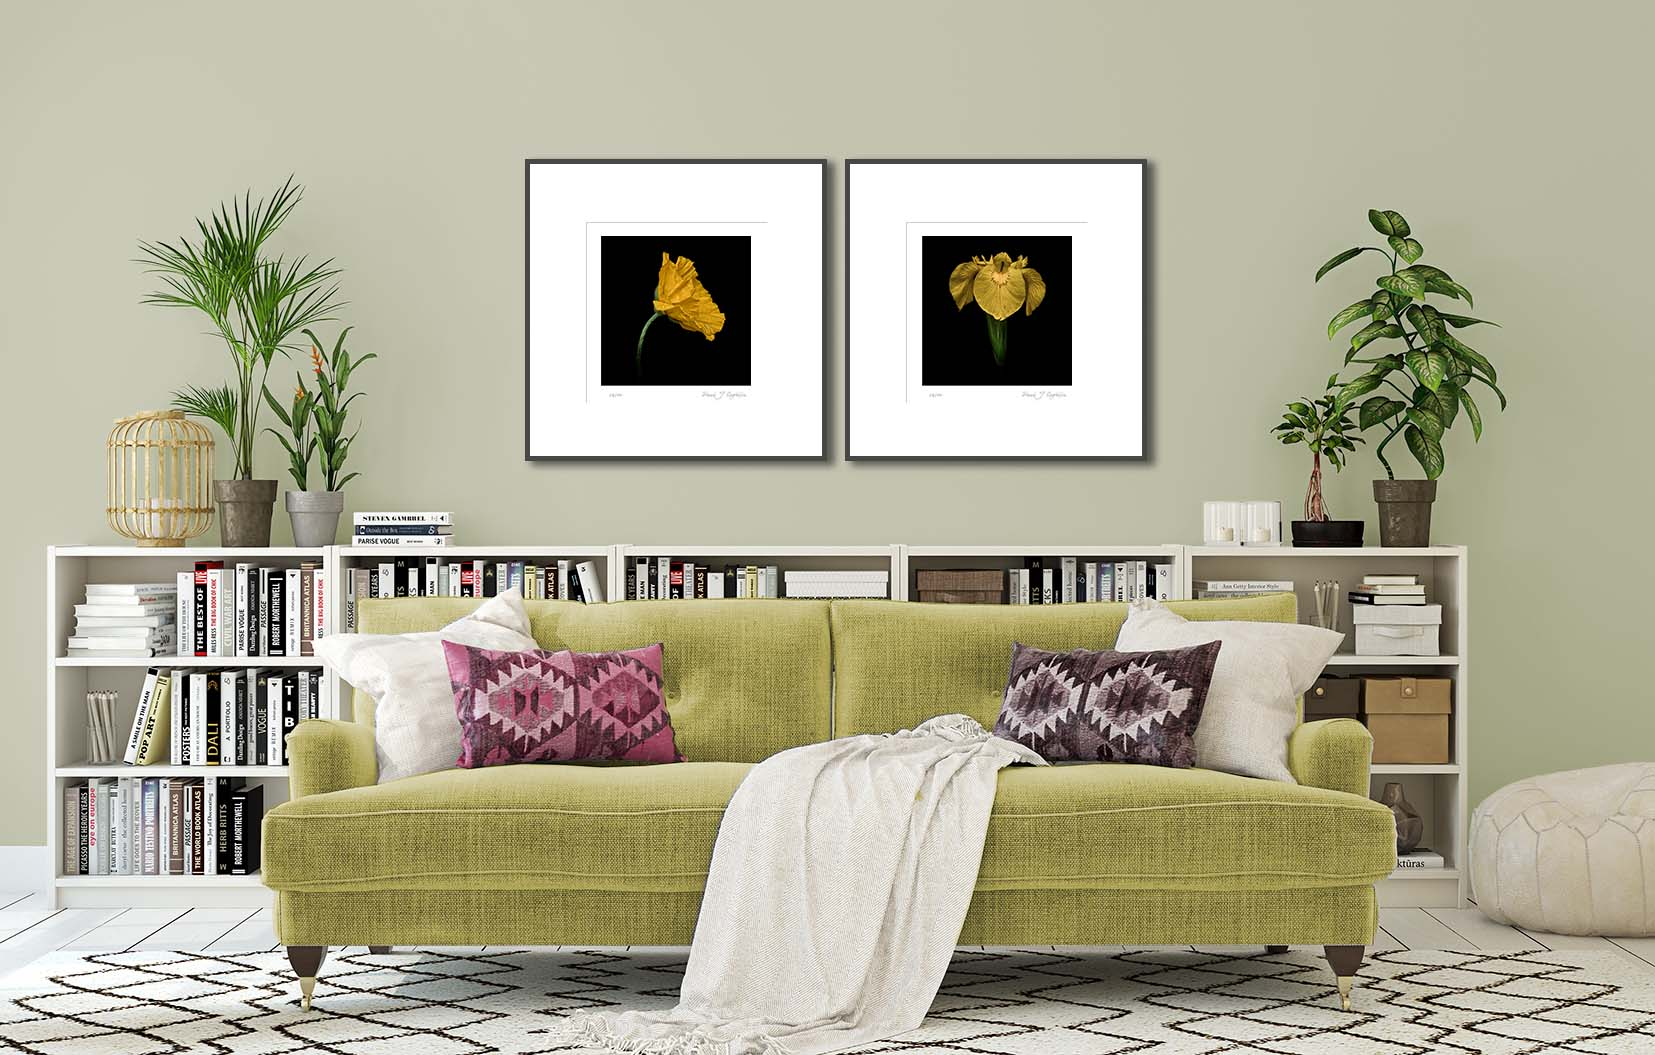 Yellow Field Poppy (colour) and Yellow Iris (colour). Two fine art prints of yellow flowers on a black background, framed and on the wall.